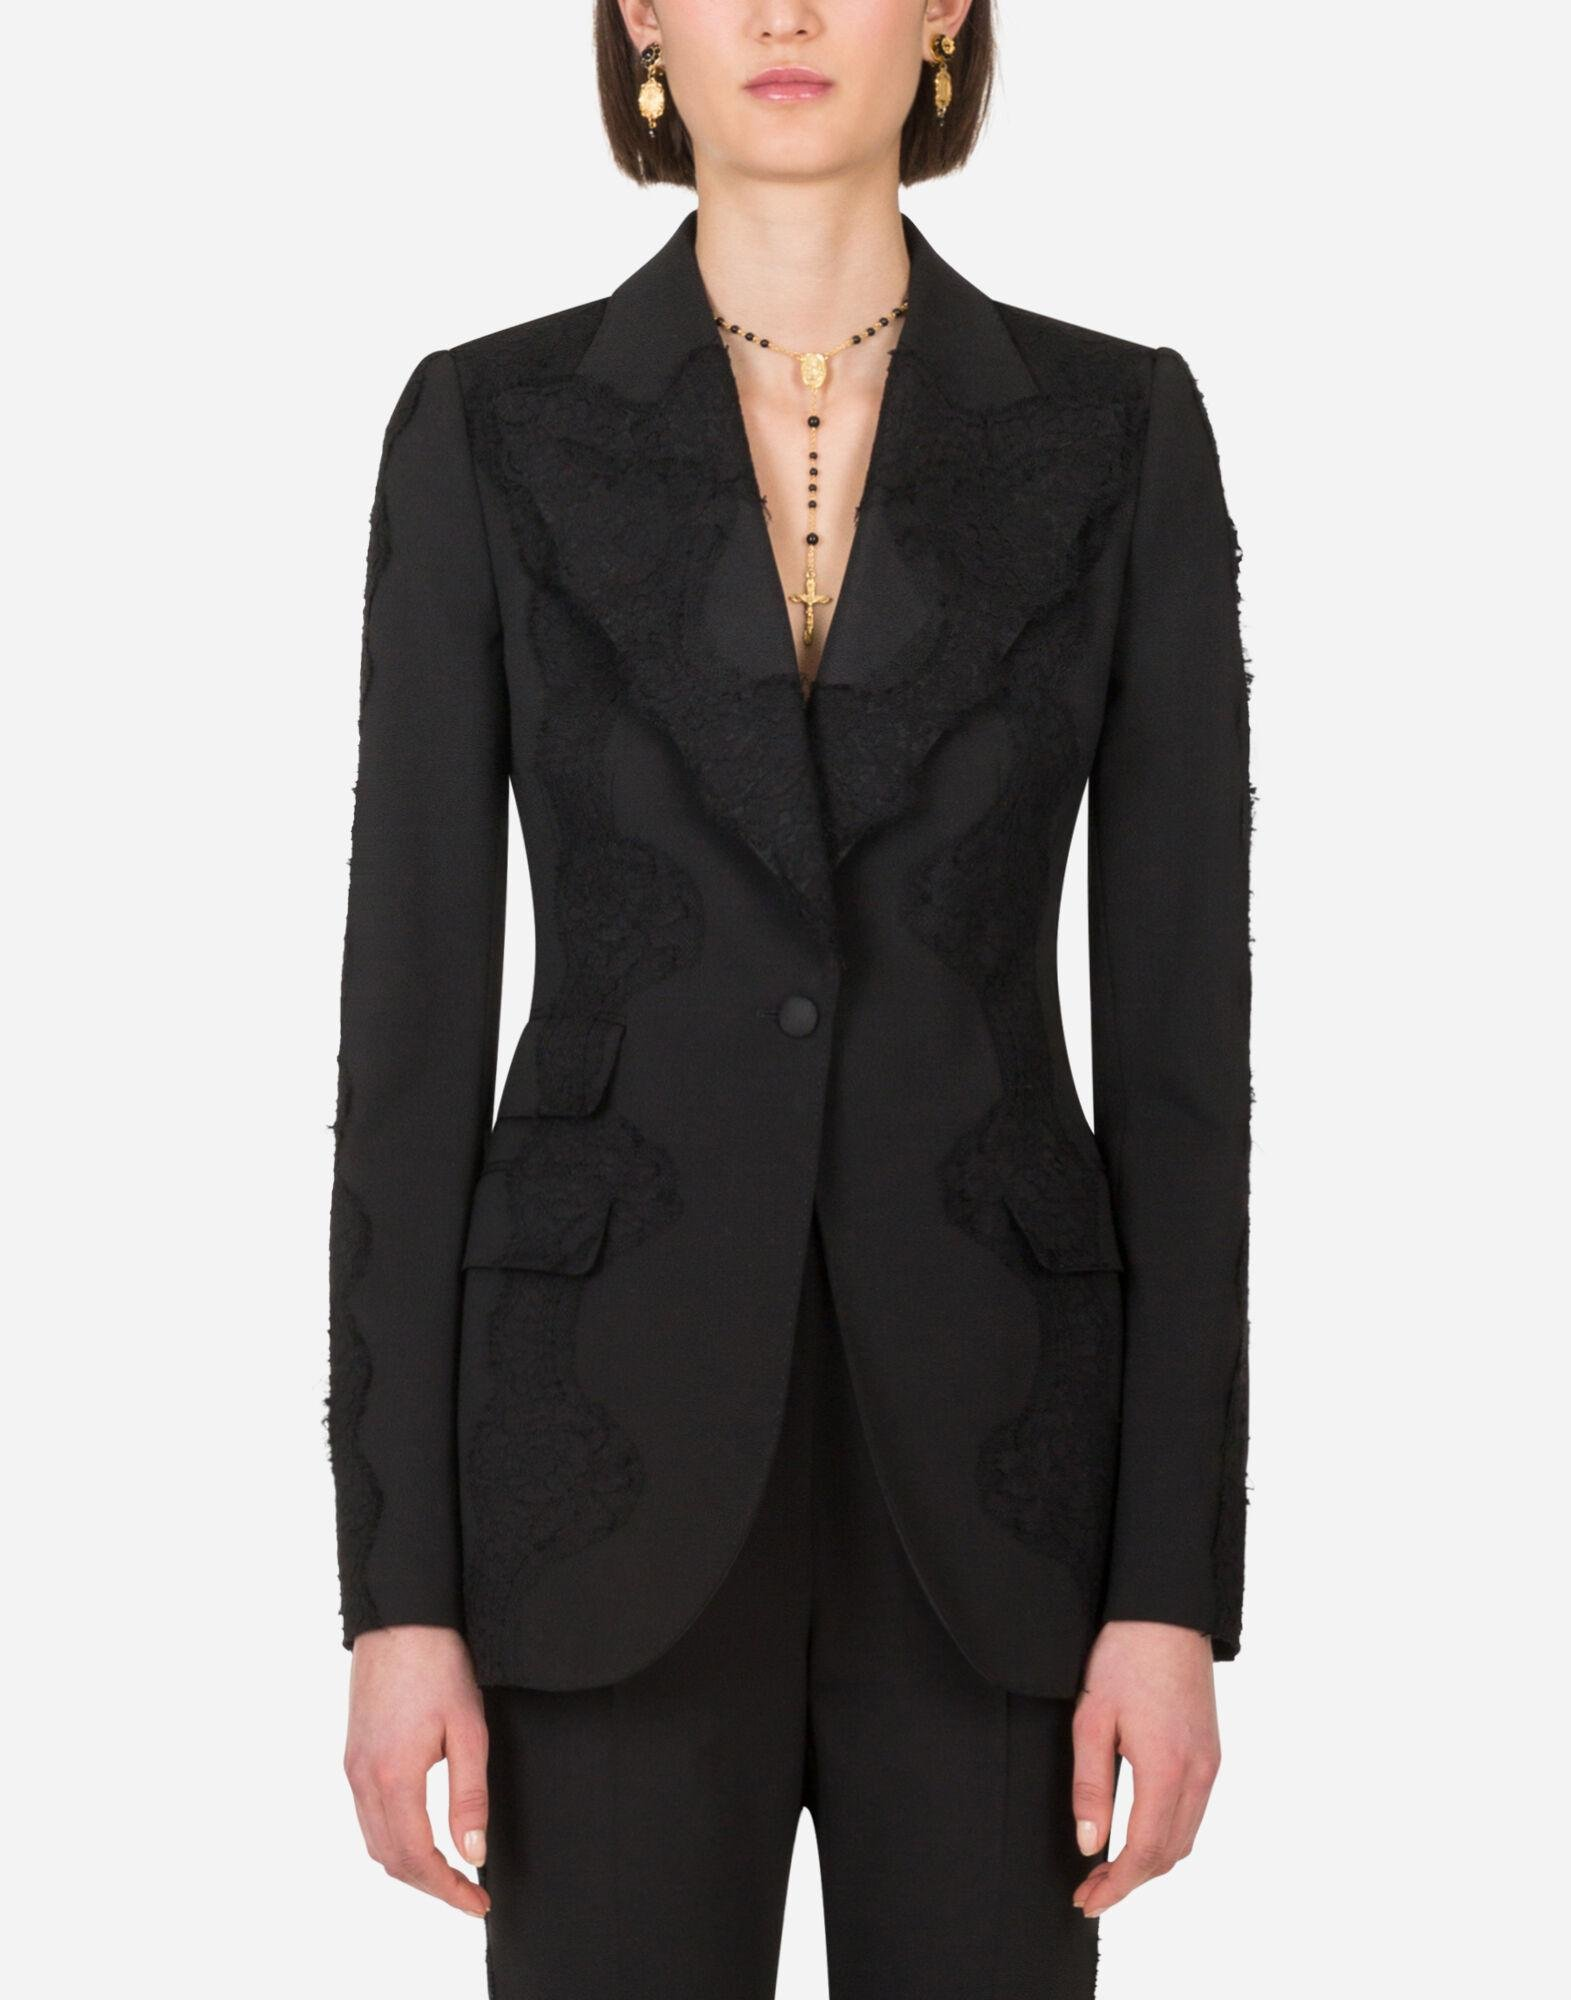 Single-breasted woolen blazer with lace details